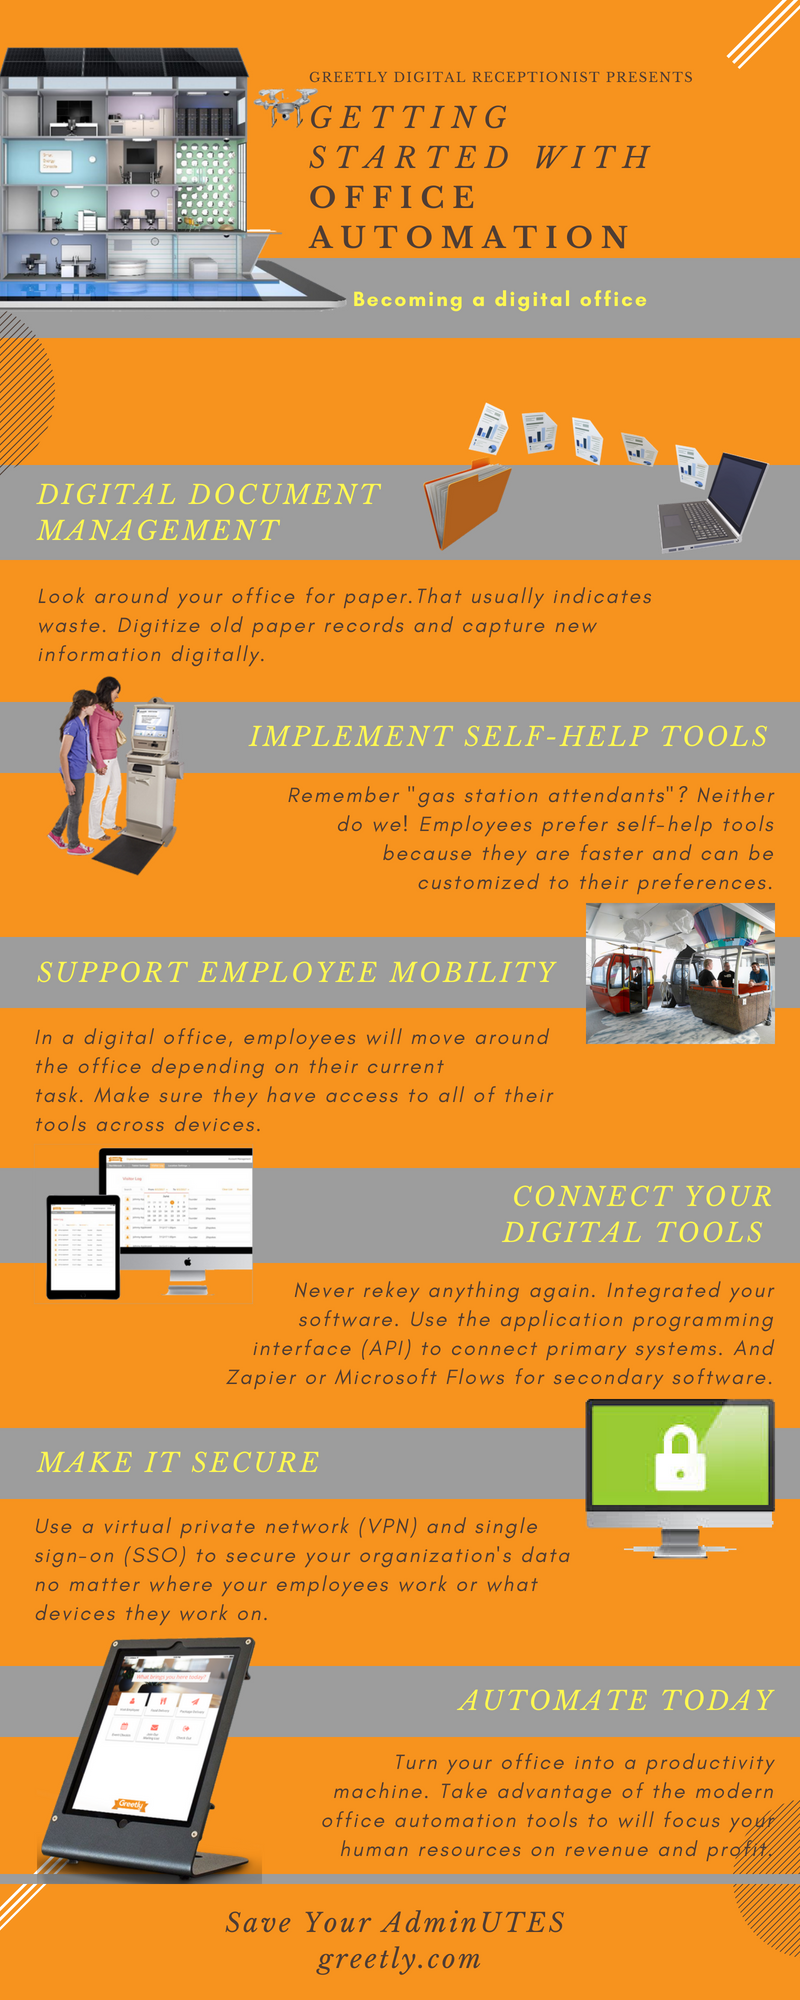 Office Automation Infographic